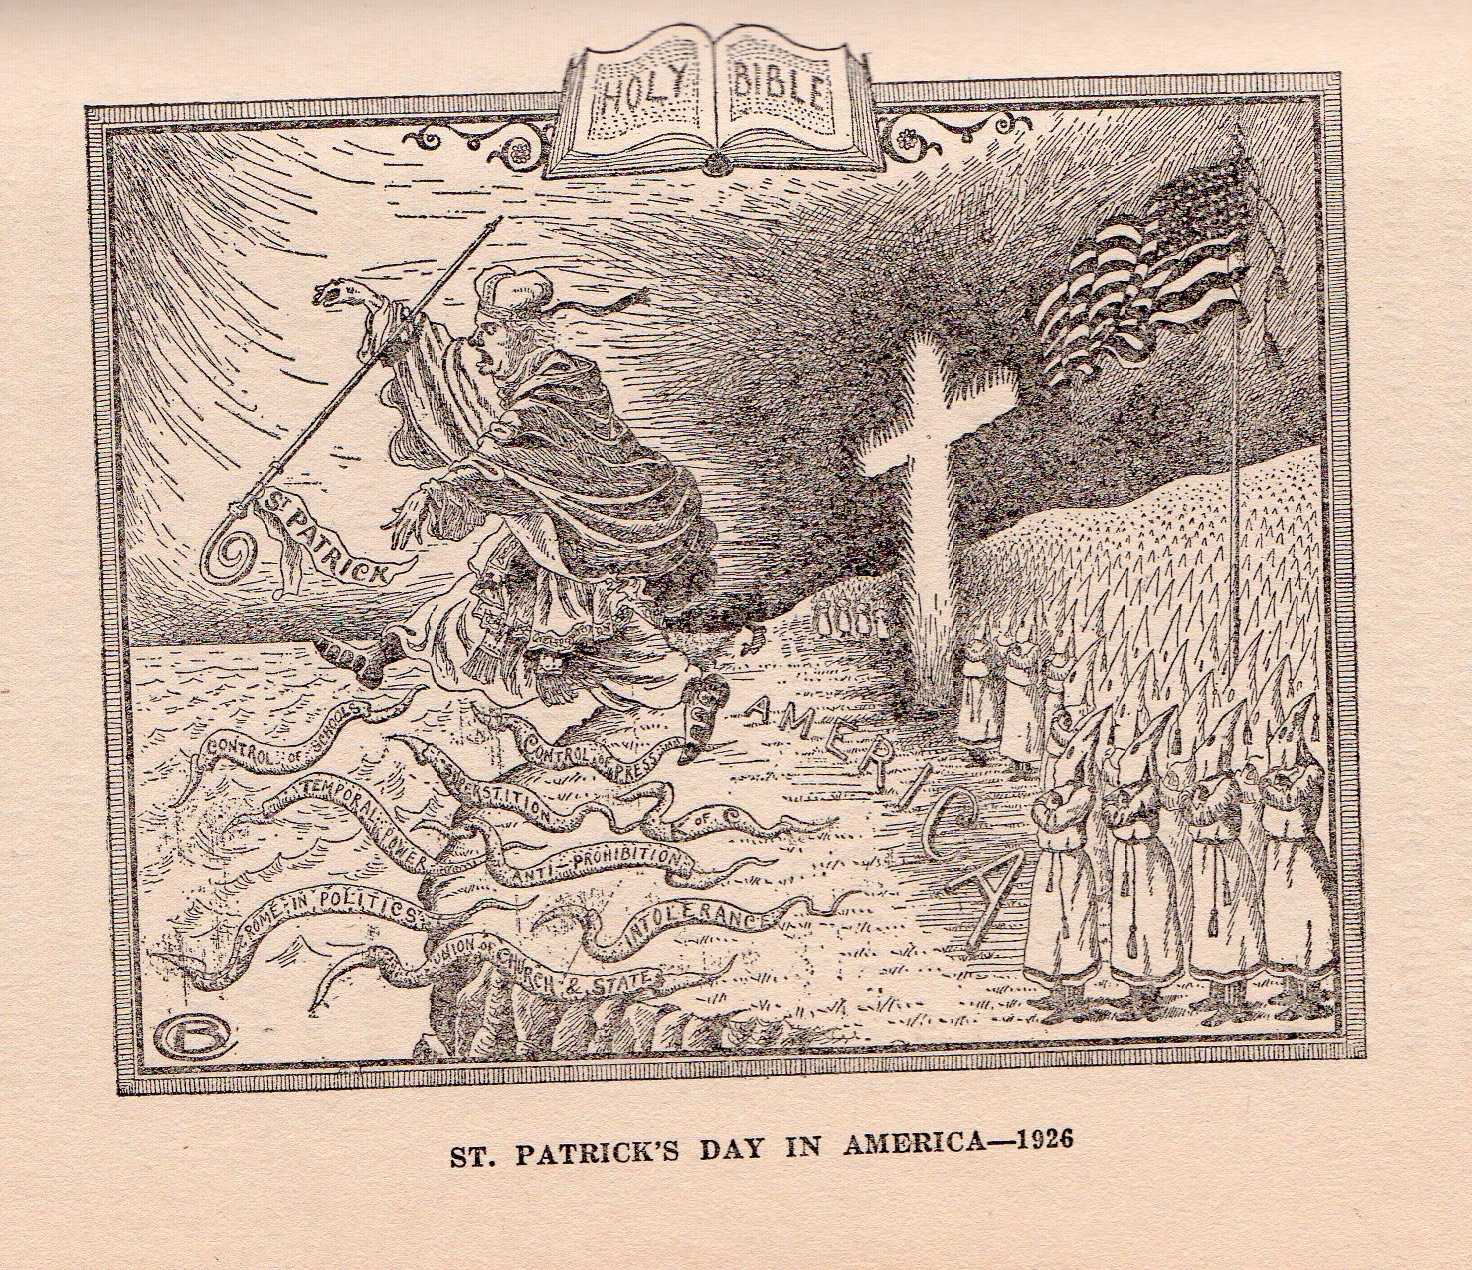 This 1920s cartoon shows the Ku Klux Klan chasing the Catholic Church, personified as St. Patrick, from the shores of the United States.